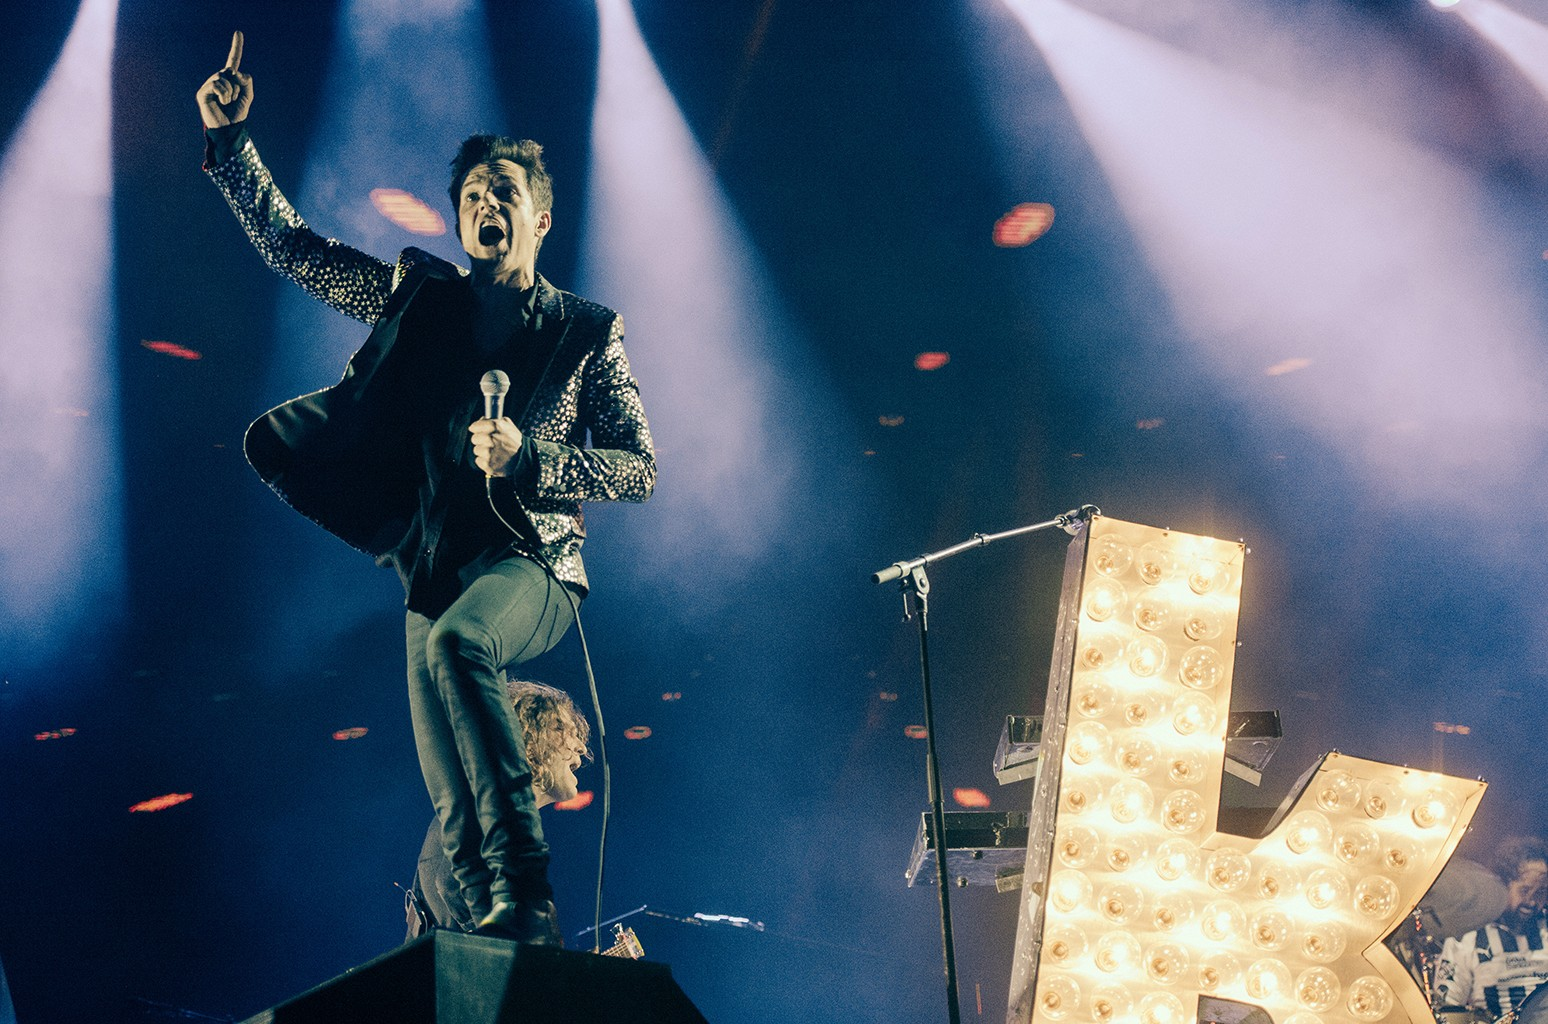 Brandon Flowers of The Killers performs at Pal Norte Festival on March 31, 2017 in Monterrey, Mexico.